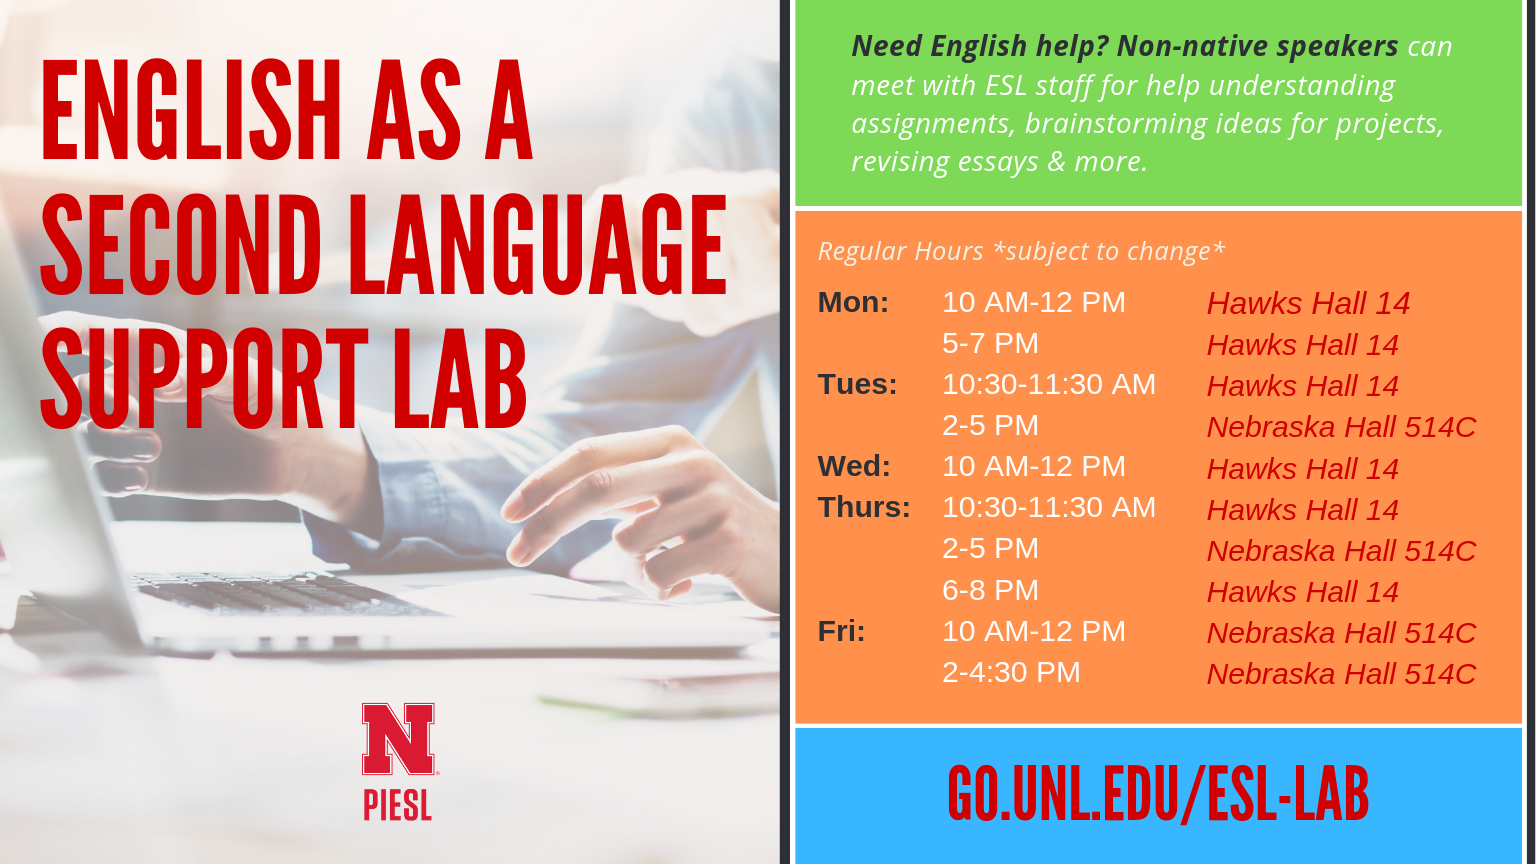 spring  english language support lab  announce  university of  piesl english support lab